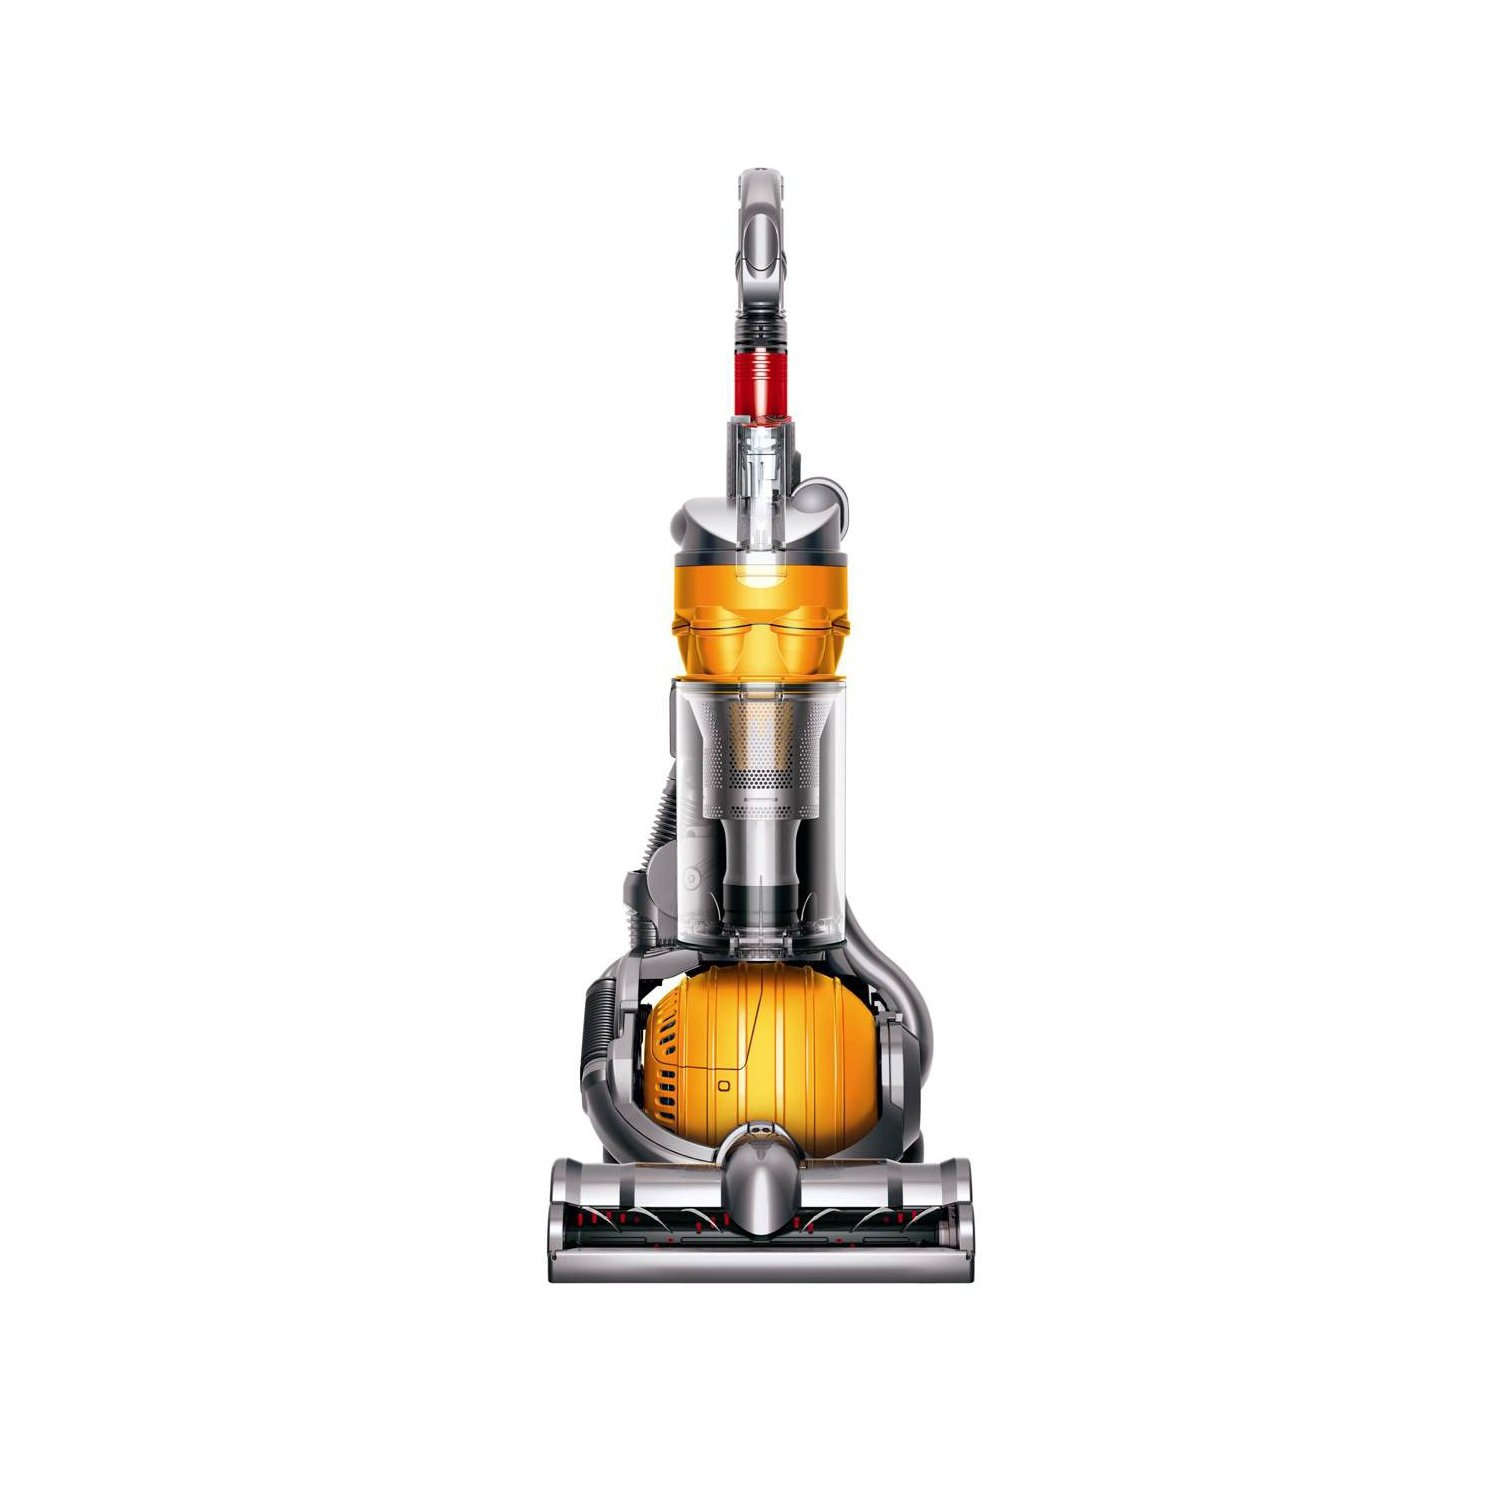 dyson vacuum cleaners dyson dc24 multi floor ultra. Black Bedroom Furniture Sets. Home Design Ideas